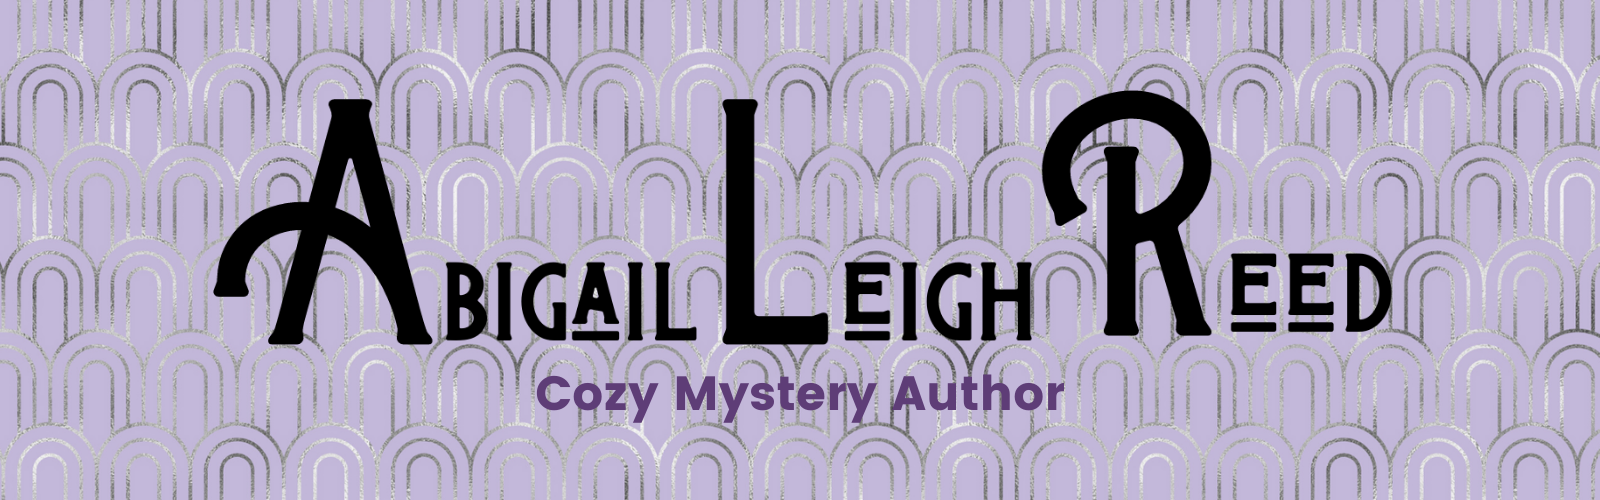 abigailleighreed.com - Author, Abigail Leigh Reed